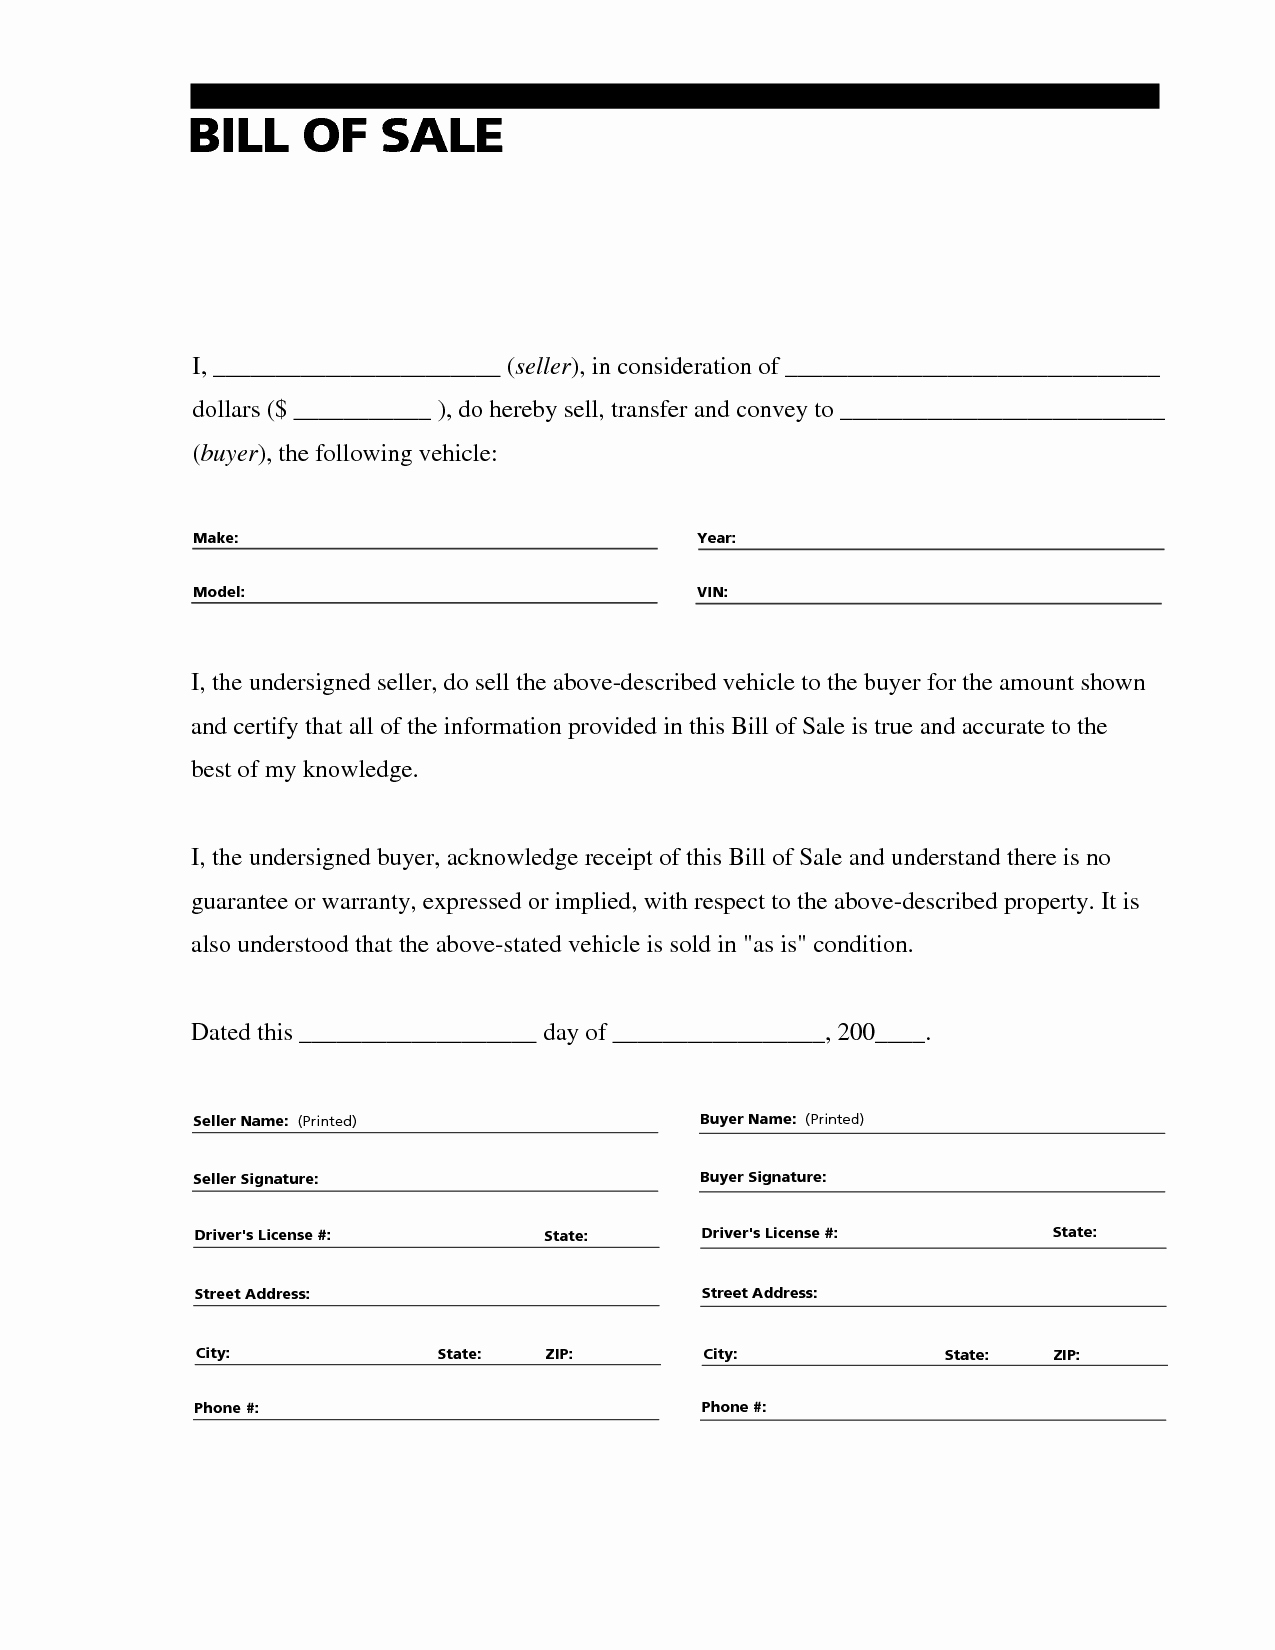 Bill Of Sale Example form Awesome Printable Sample Bill Of Sale Templates form